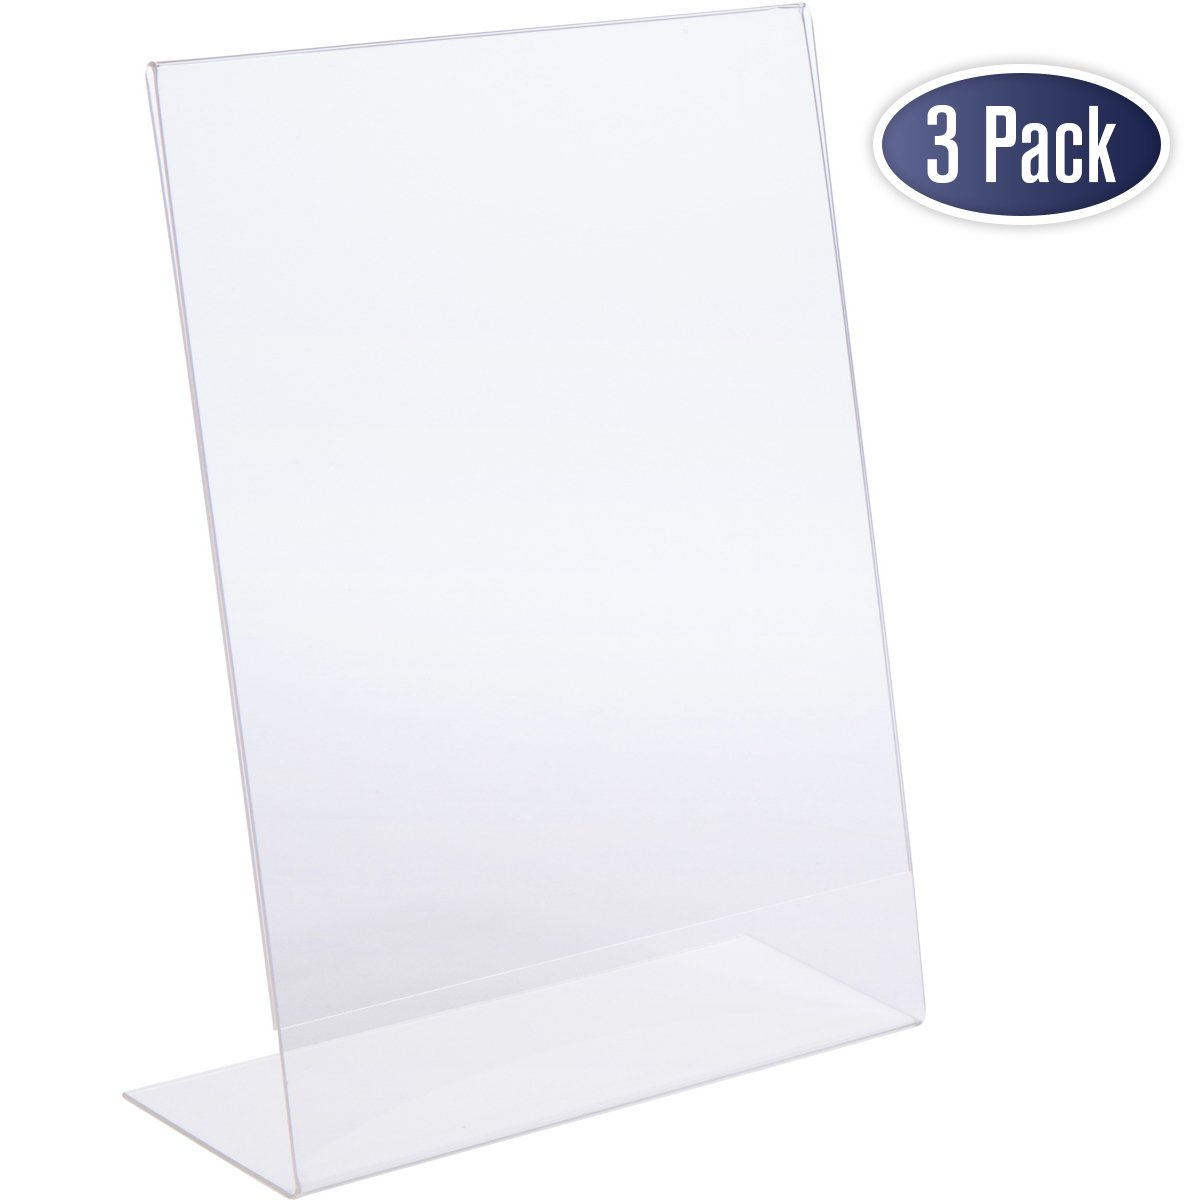 Slant Back Acrylic Sign Holder, 8.5 x 11 Inches Economy Portrait Ad Frames, Perfect for Home, Office, Store, Restaraunt (3 Pack) by Dasher Products